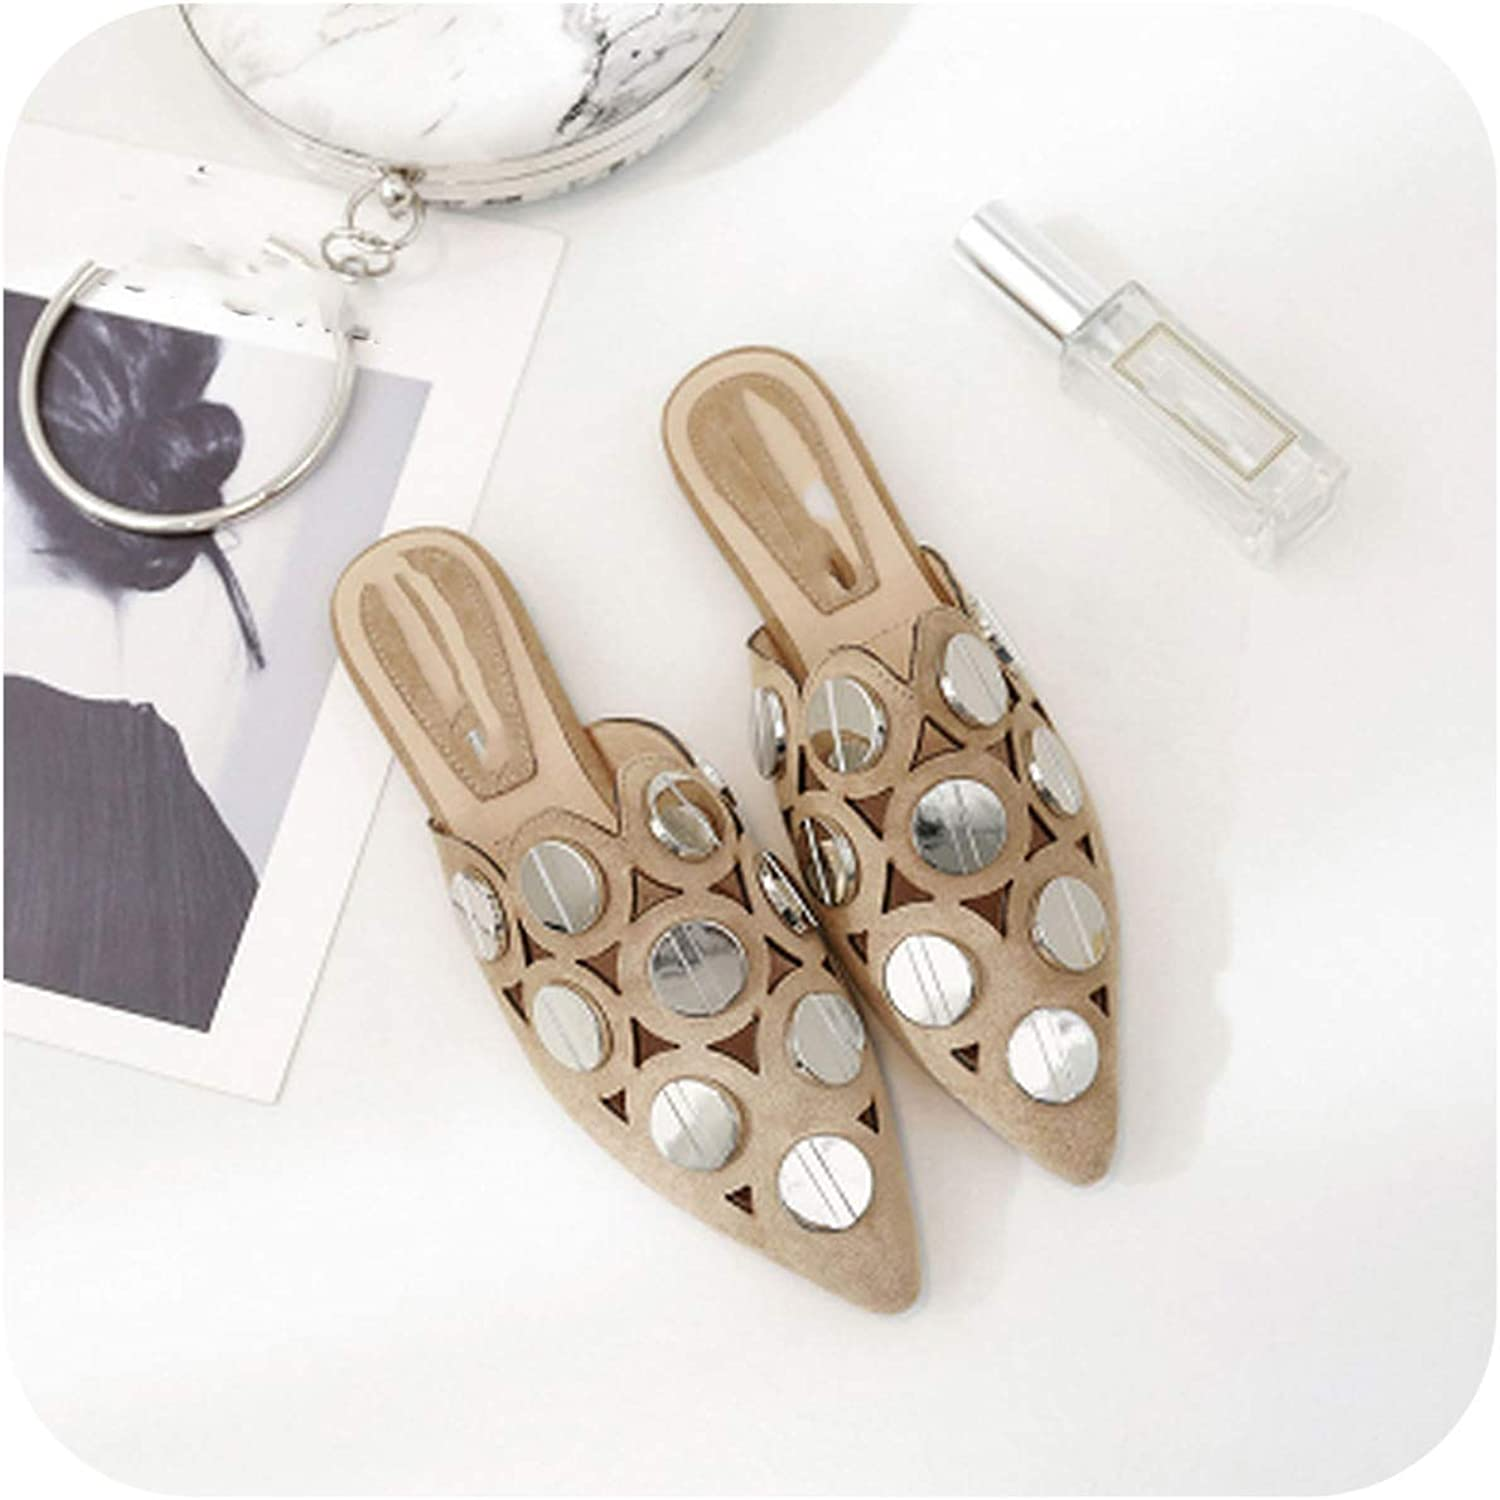 FAT BABY Woman Mules Half Slippler shoes Pointed Toe 2019 Spring Summer New Female Fashion Casual shoes Bling Bling Flats shoes